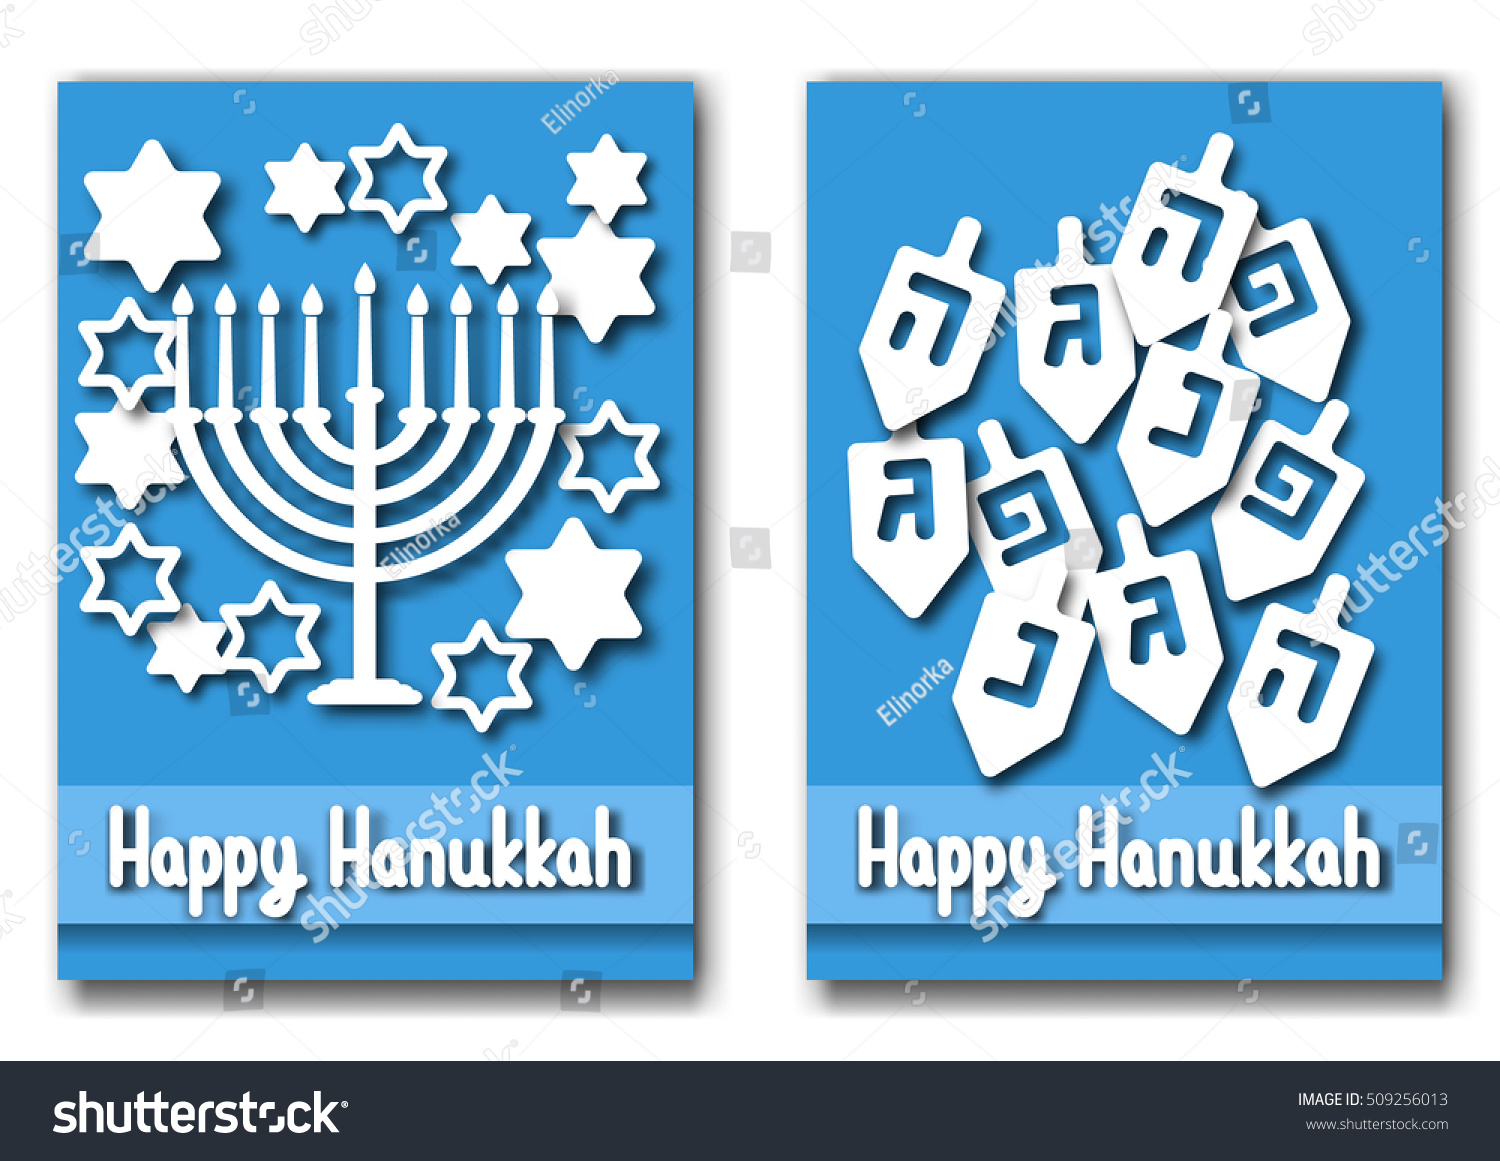 Typical Hanukkah Greeting Image Collections Greetings Card Design